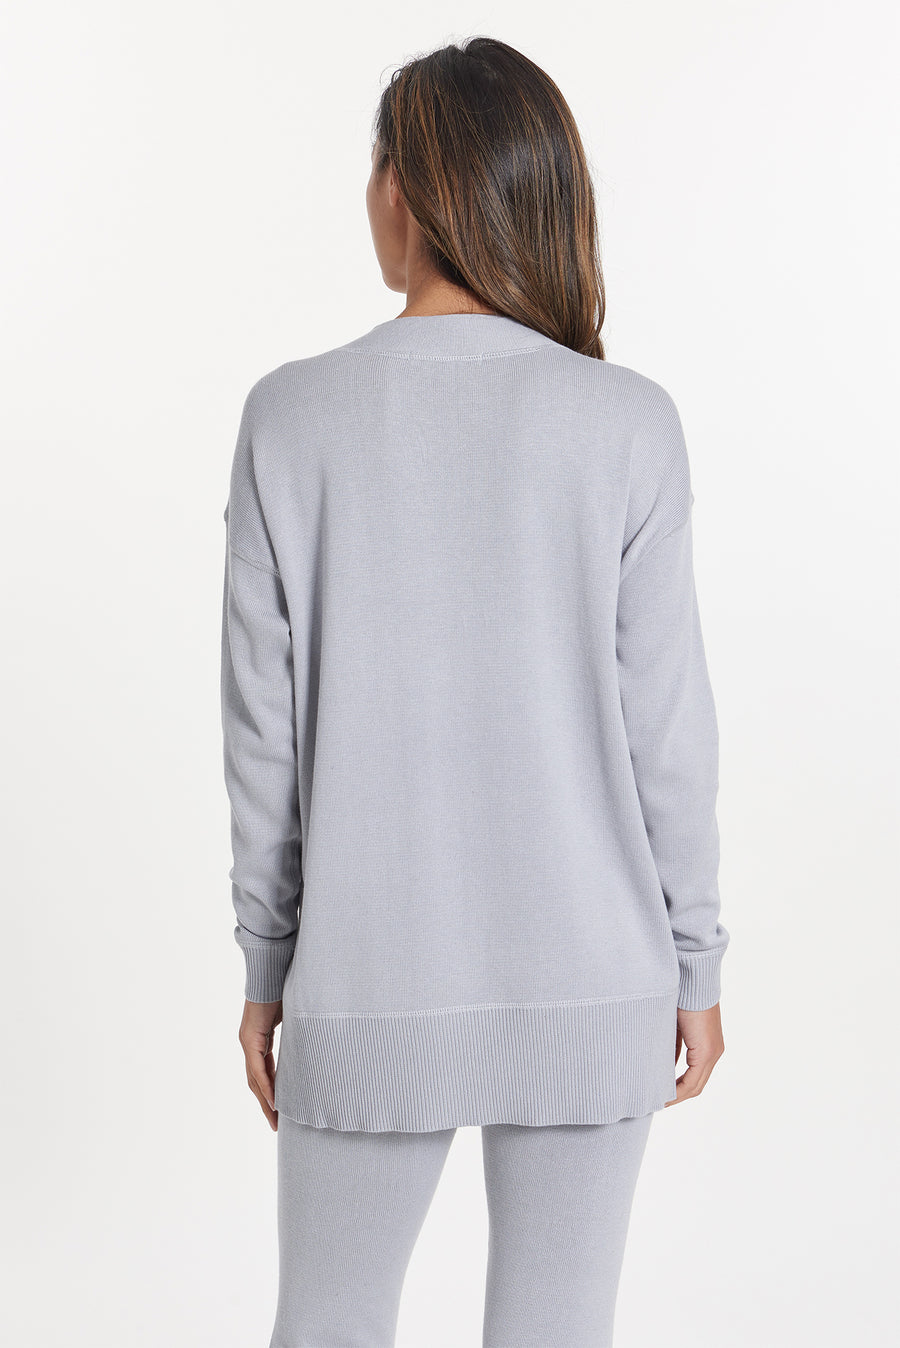 Light Grey Cashmere Vail V-Neck, var-31024115318842,var-31024115351610,var-31024115384378,var-31024115417146,var-31024115449914